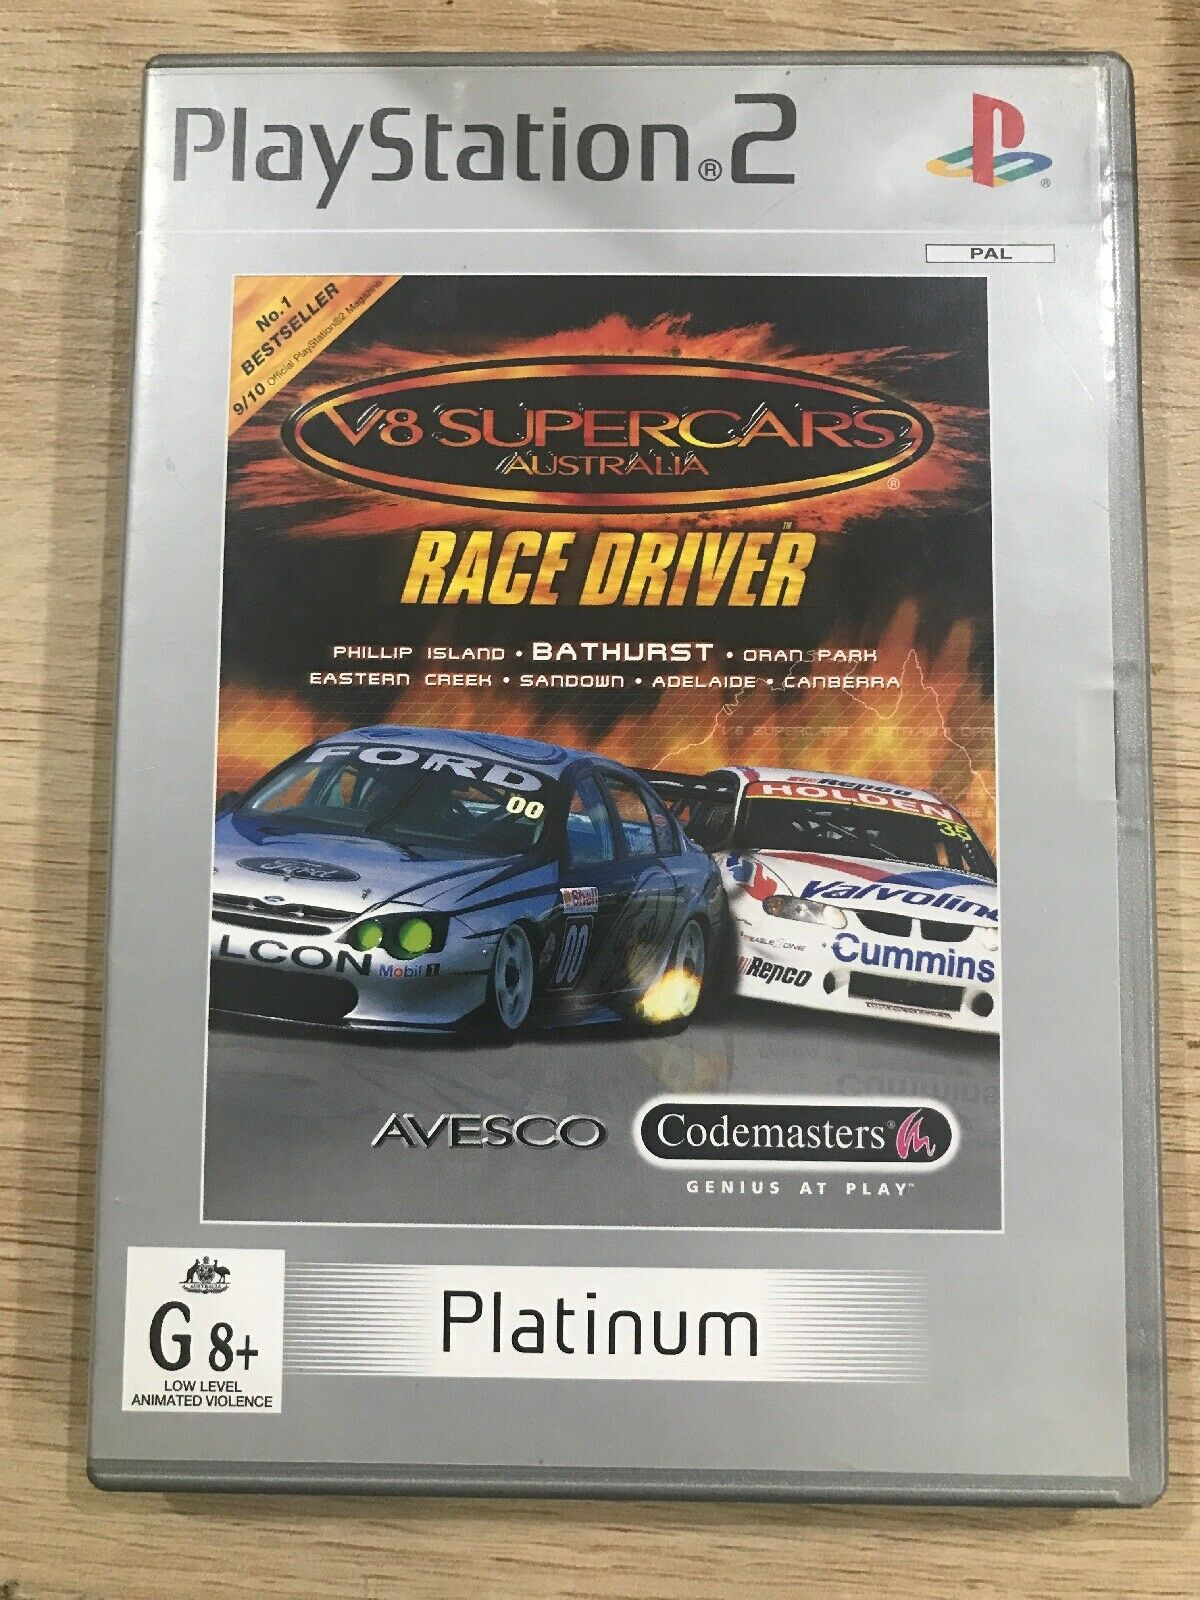 V8 Supercars Race Driver Sony Playstation 2 2002 For Sale Online Ebay